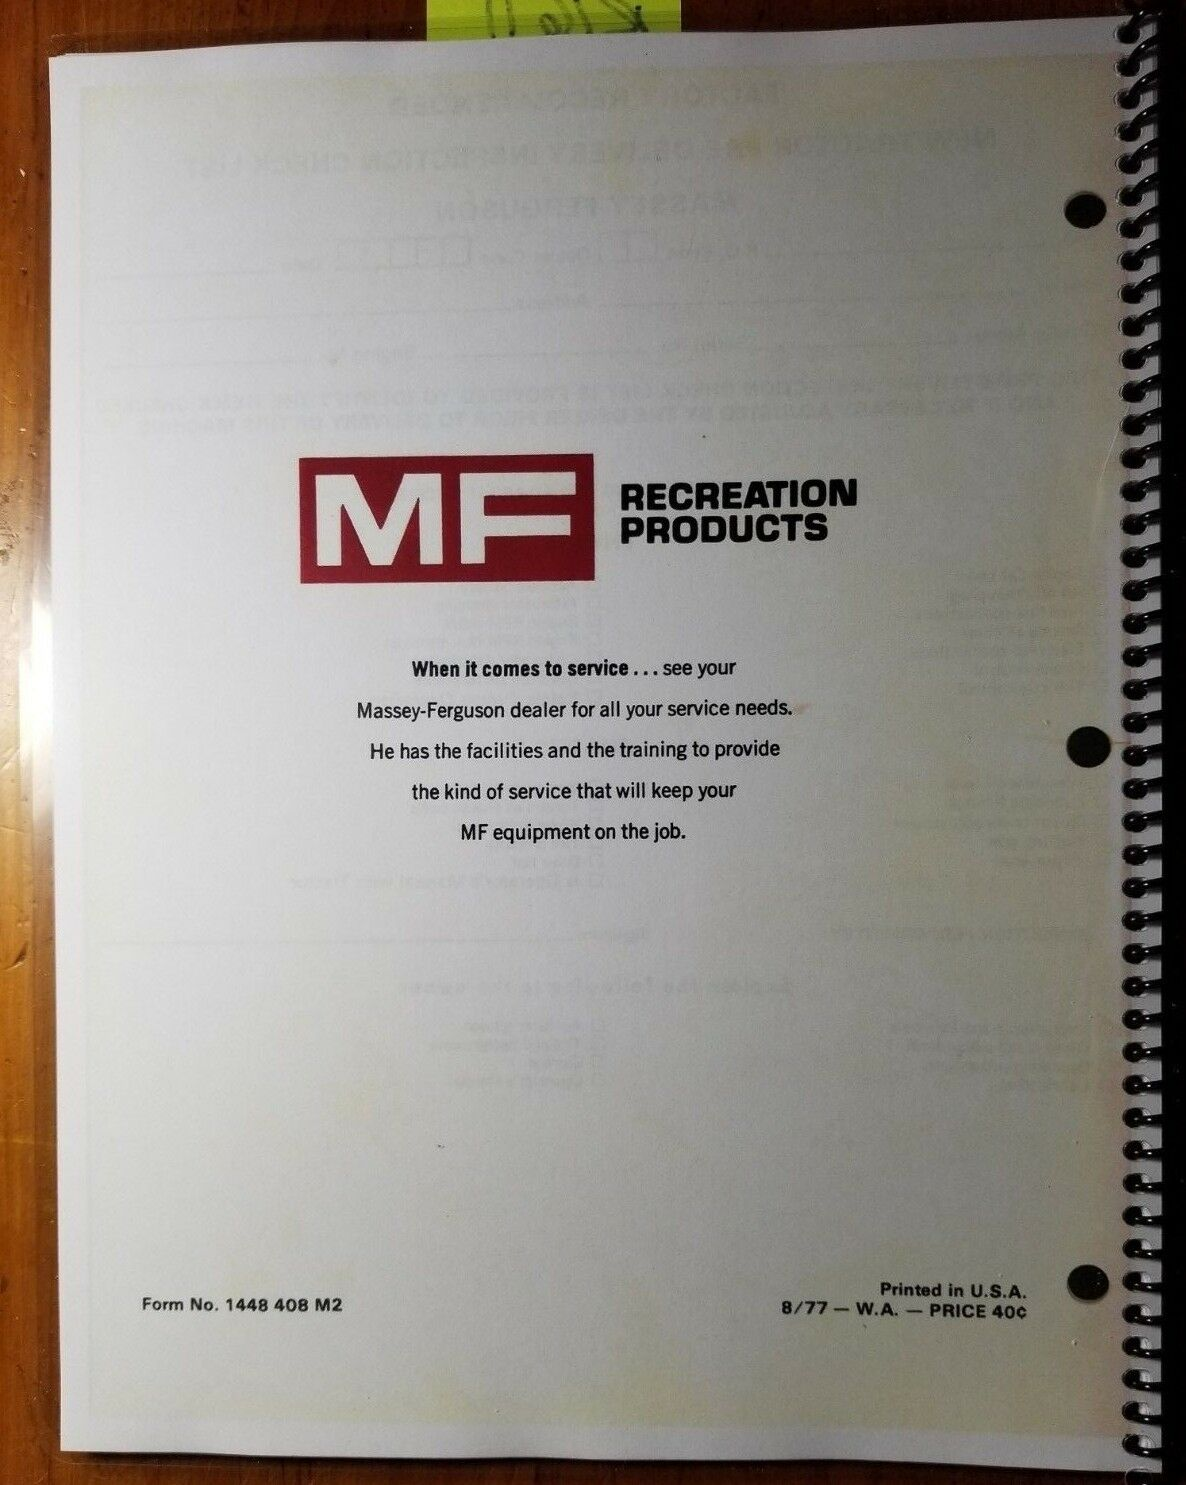 Massey Ferguson MF 1200 Garden Tractor Mower Operators Manual Mf1200 | eBay